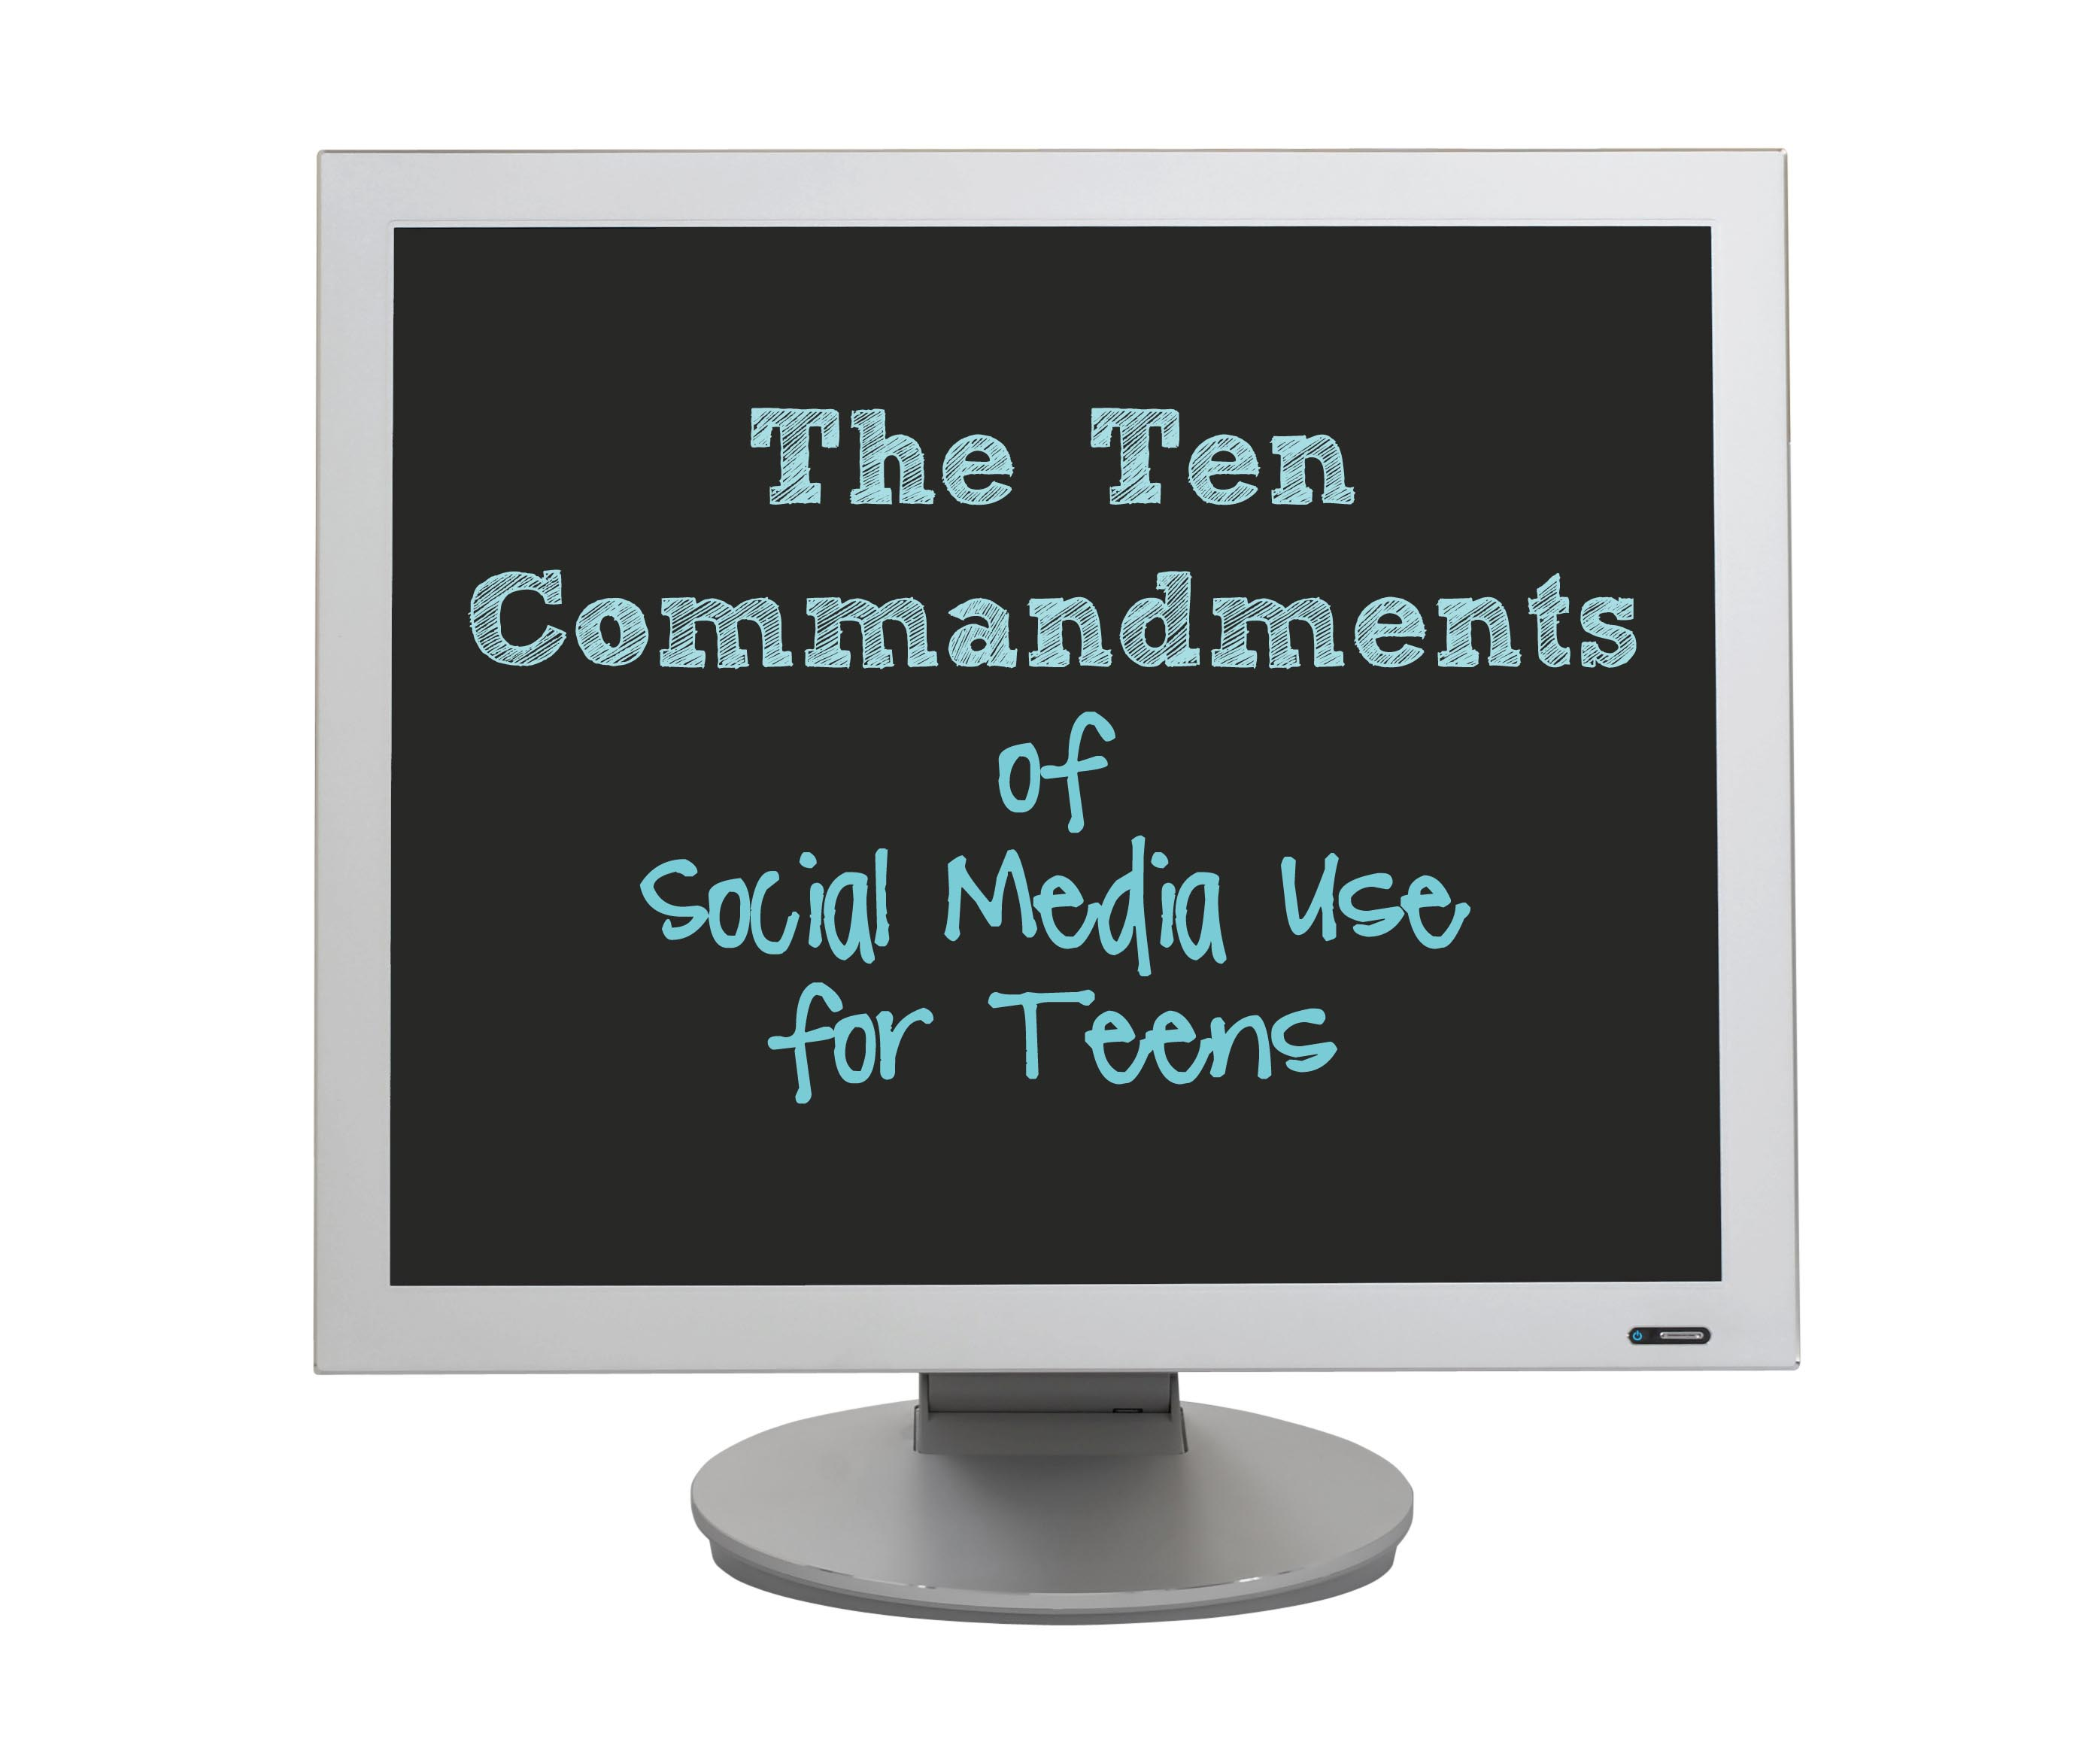 The 10 Commandments of Social Media use for Teens